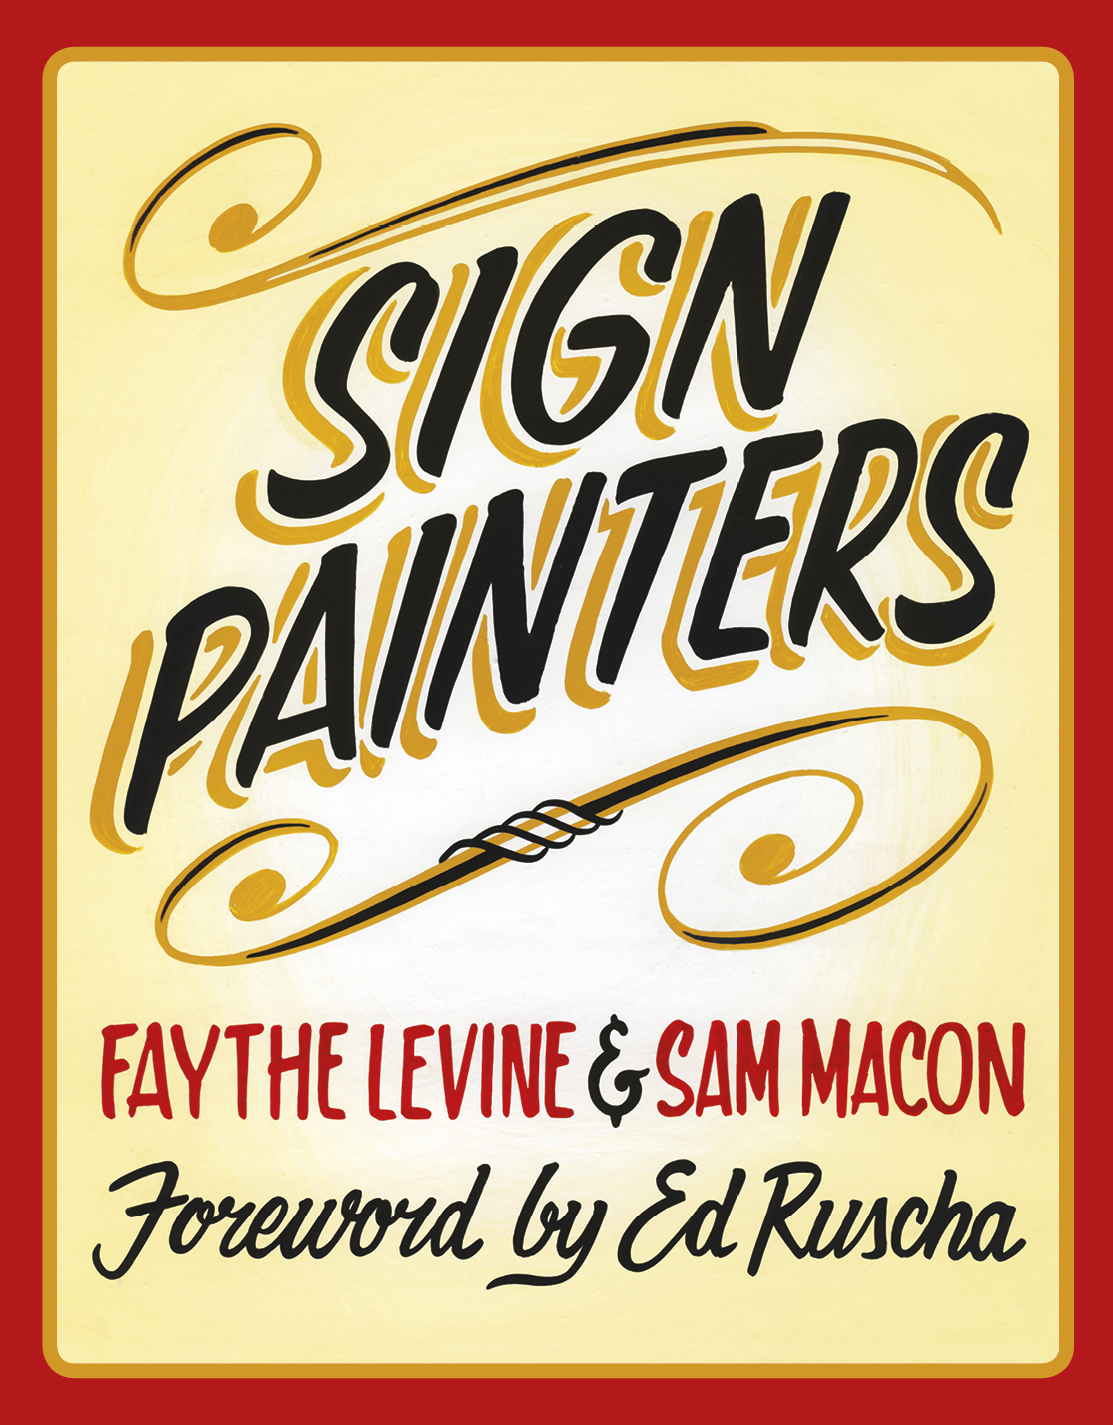 "Sign Painters Book: Look for us in the new book ""Sign Painters"" published by Princeton Architectural Press due for release October 2012!"